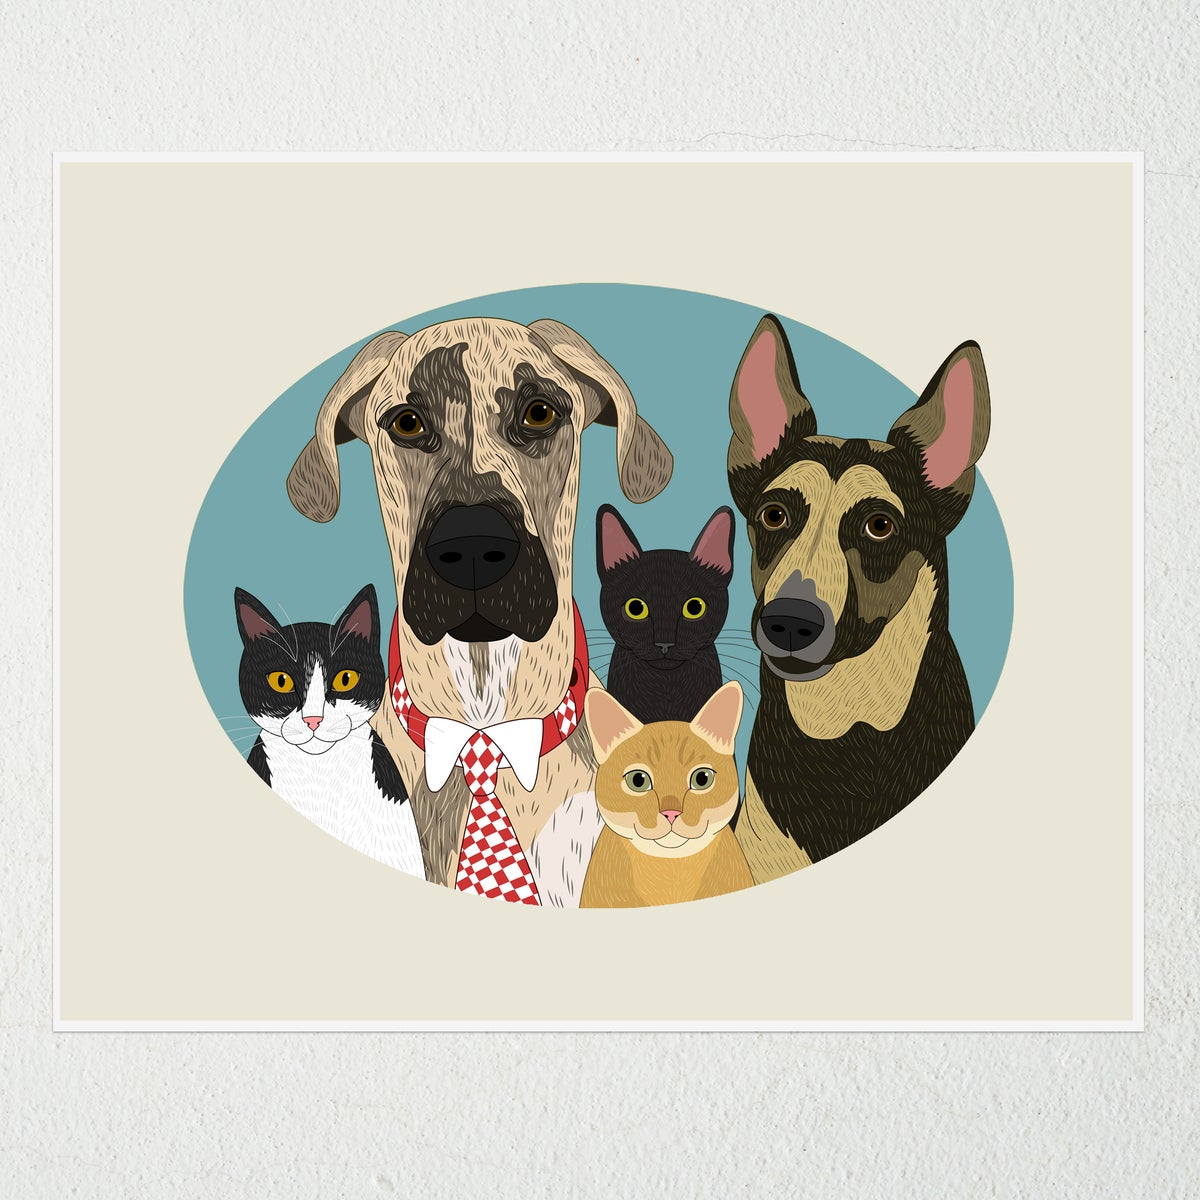 Image of 5 or more pet portraits in a single oval frame.